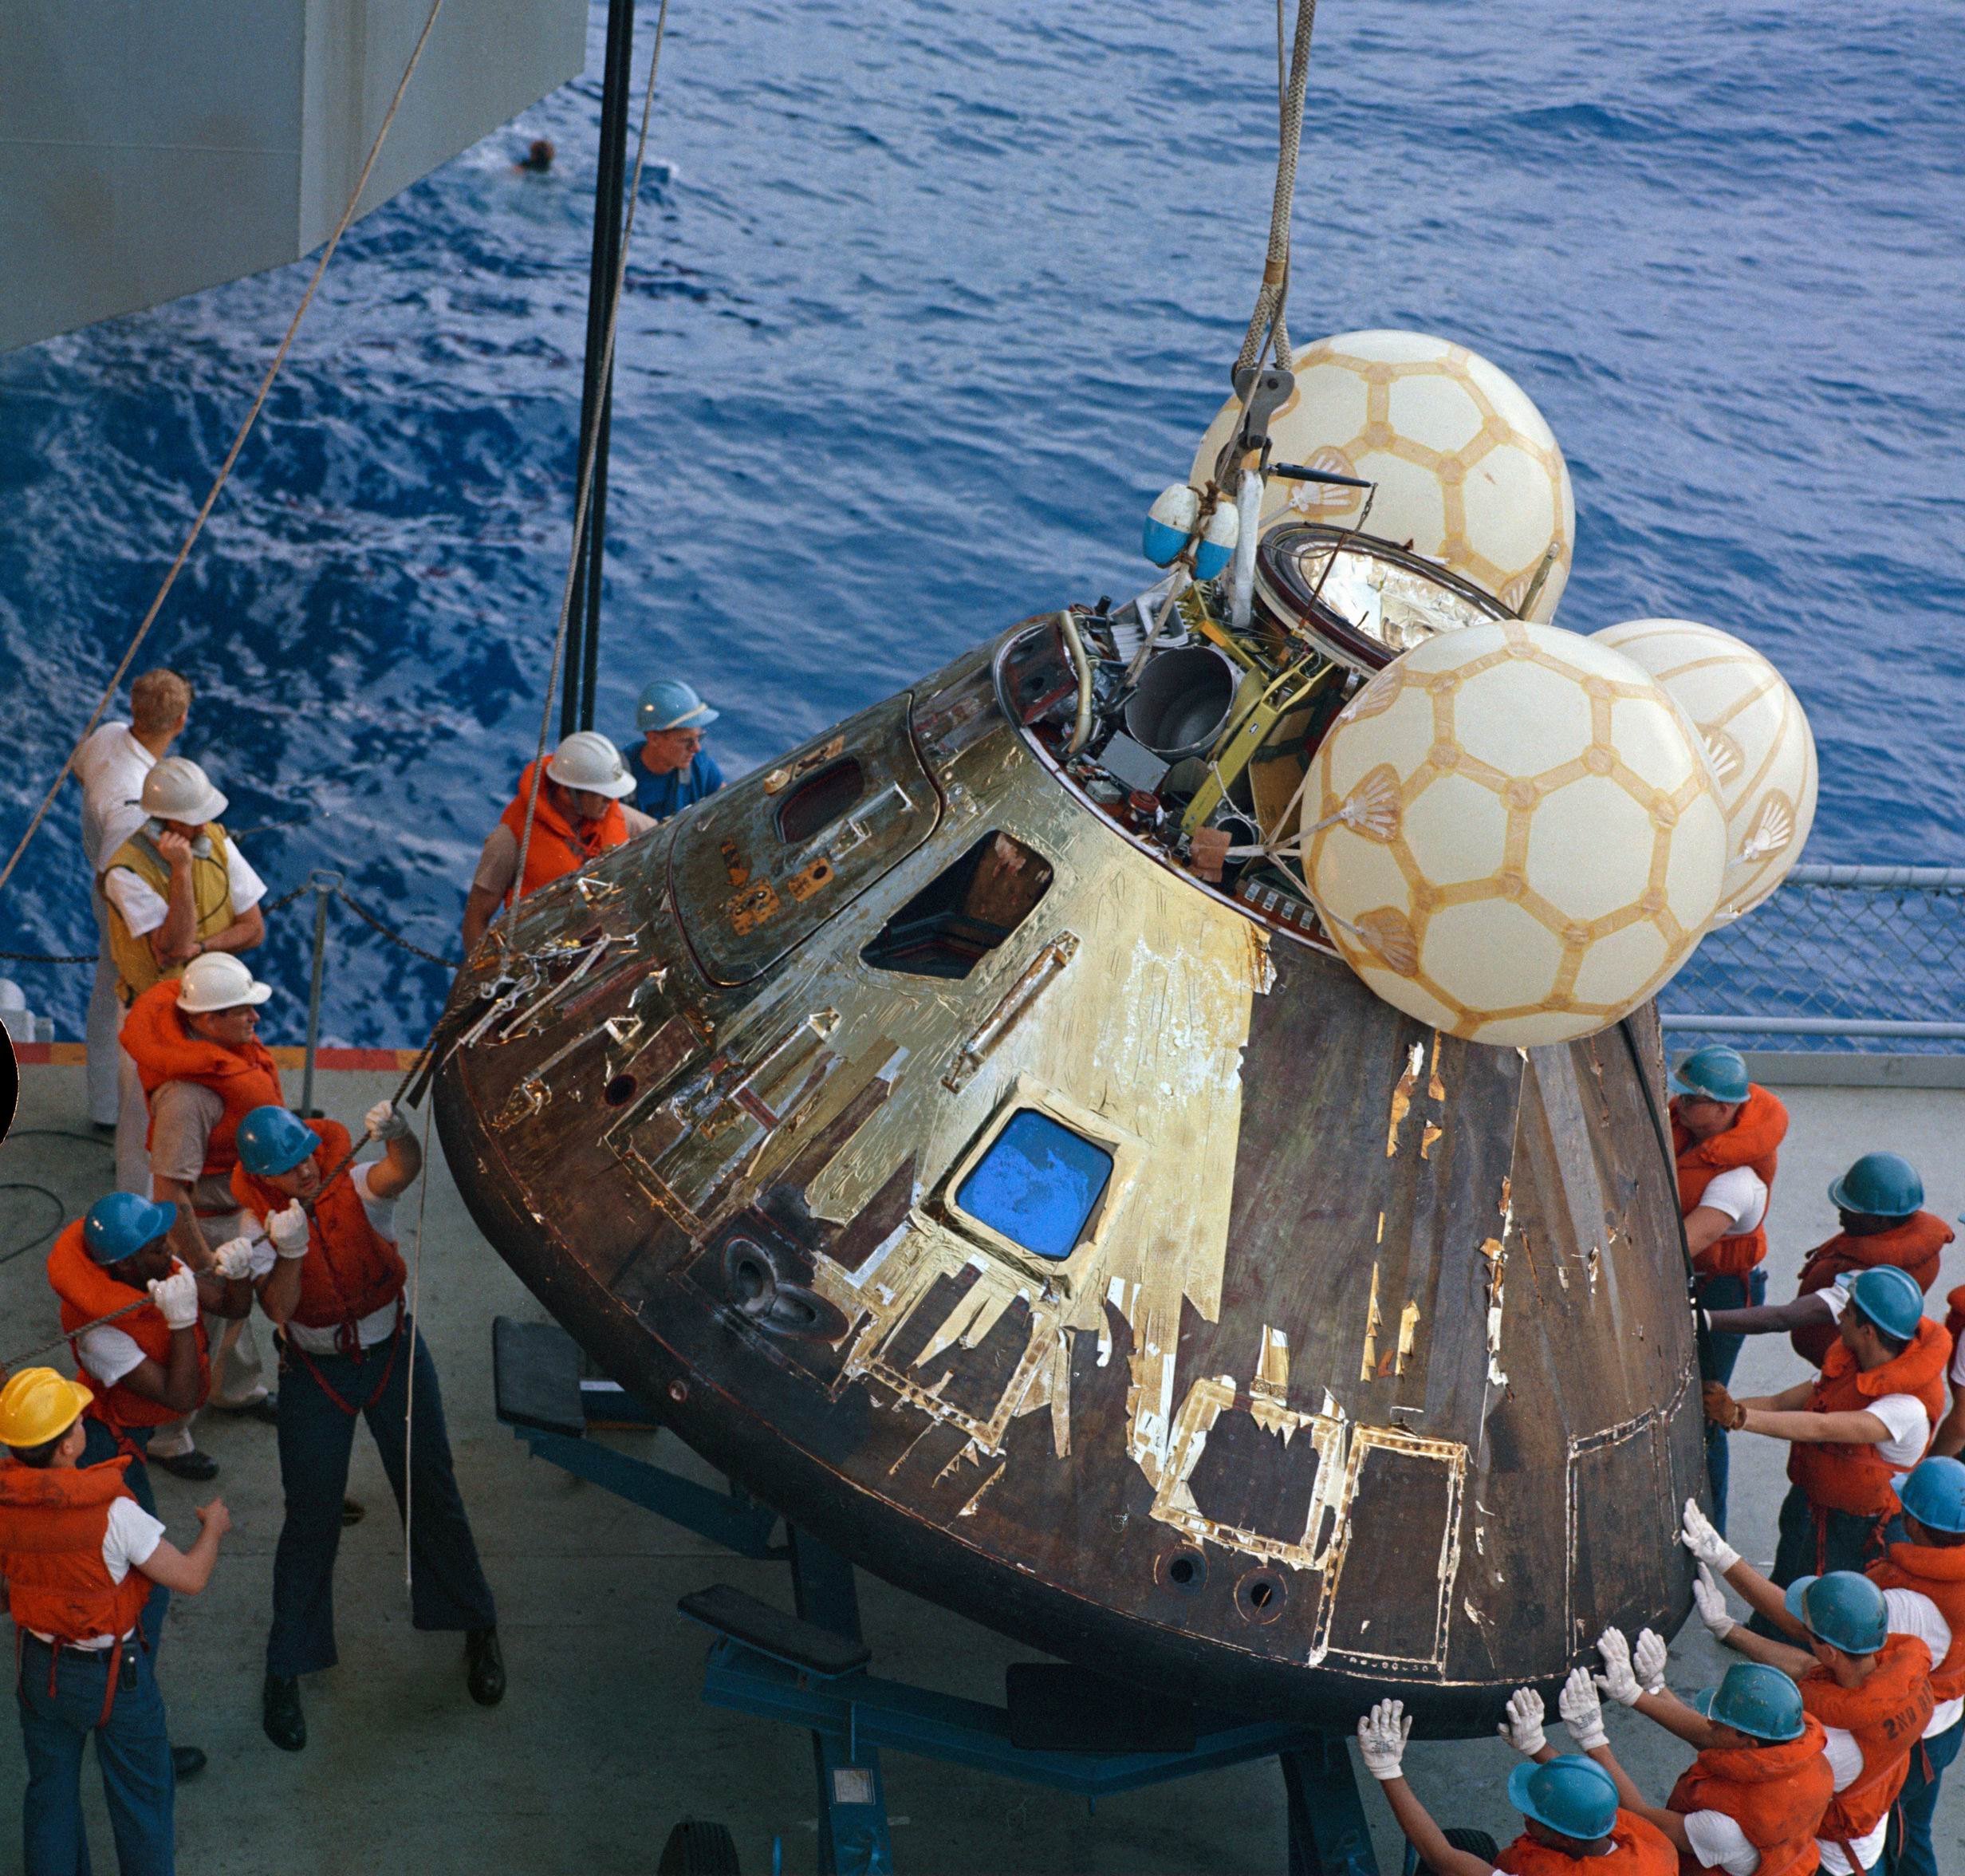 USS Iwo Jima (LPH-2) used as a prime recovery ship for the Apollo 13 mission, guide the Command Module (CM) atop a dolly onboard the ship - NASA photo, 17 April 1970.jpg